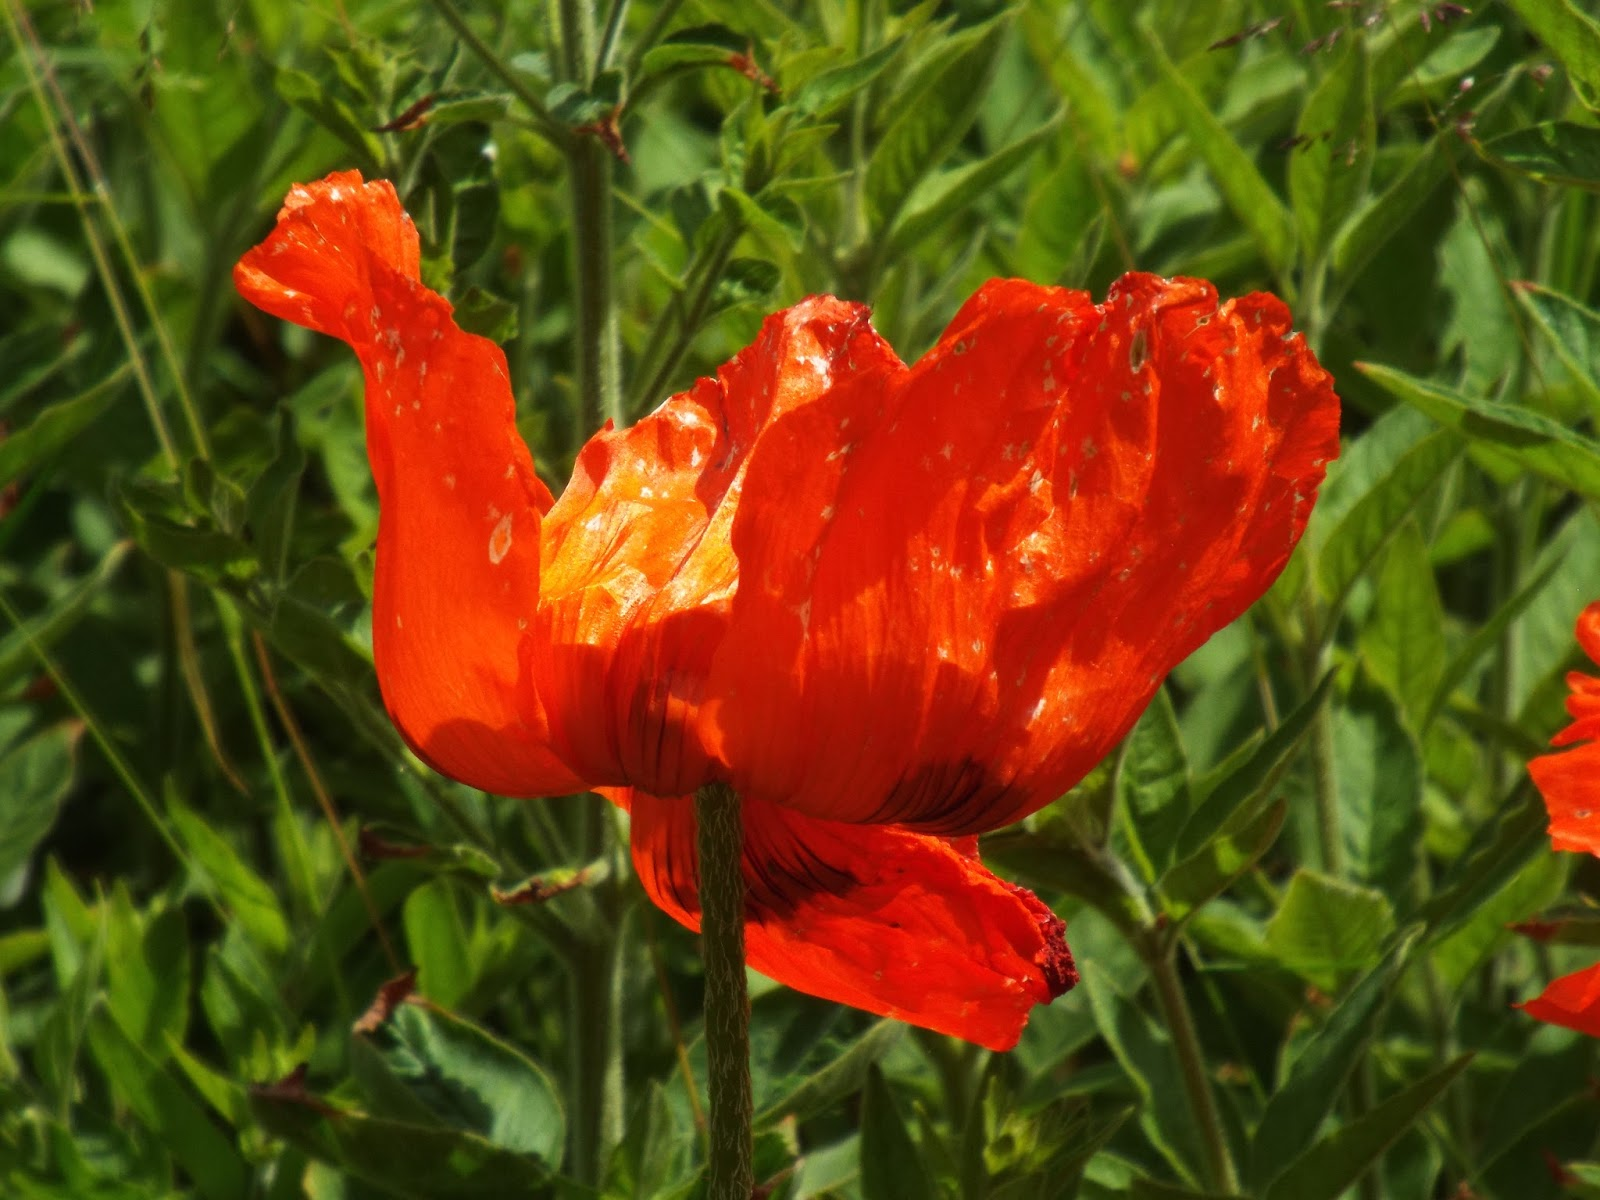 poppies in july analysis H/t poppies in july image 'little poppieslittlehell flames, do you dono harm' the repetition of 'little' and the addressing of the question to the poppies.